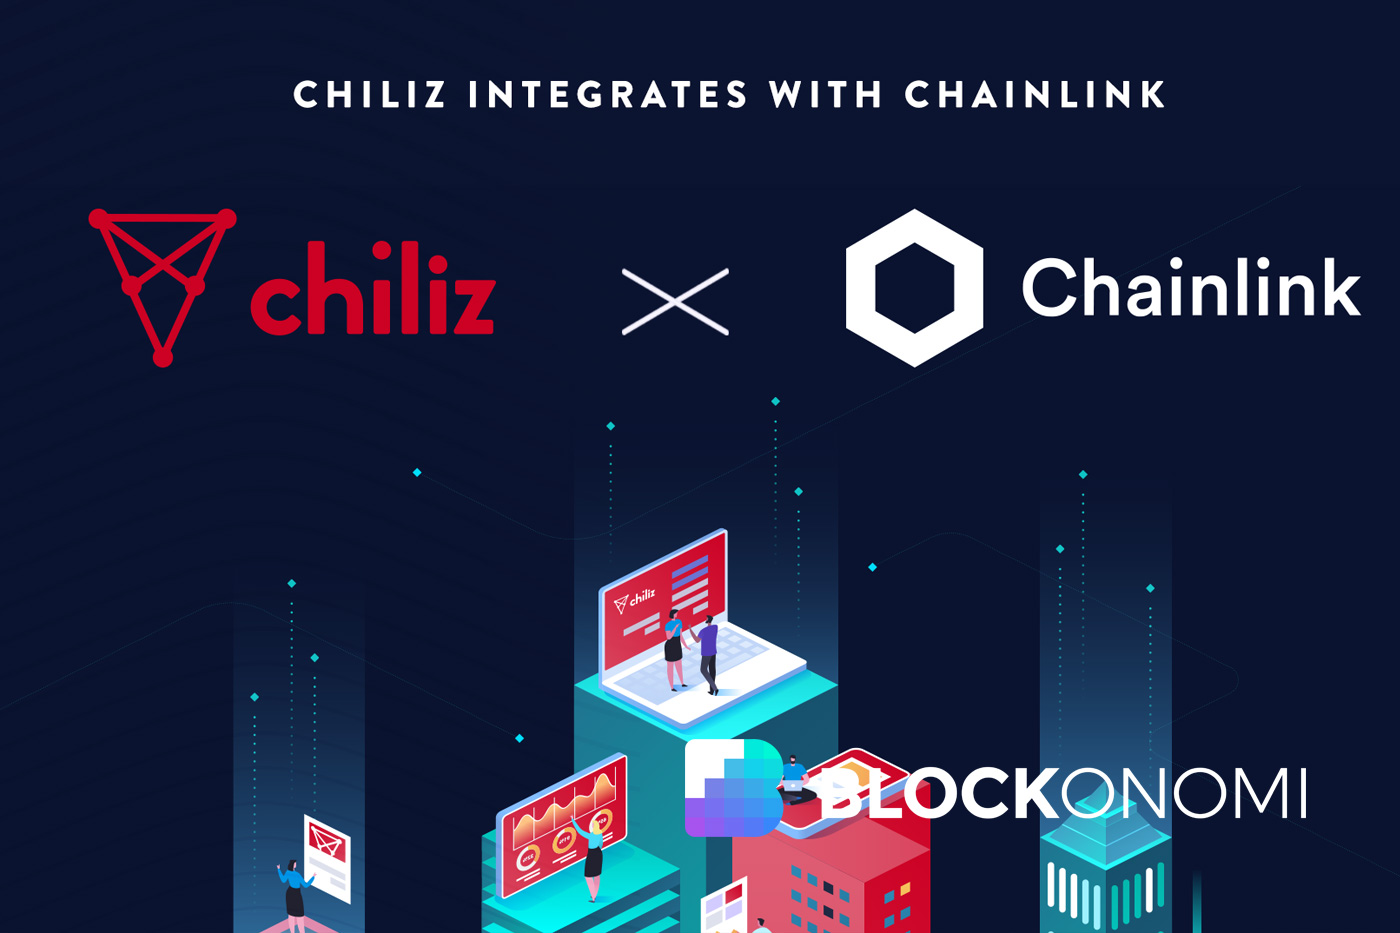 Fan Token Platform <bold>Chiliz</bold>: Latest to Link Up with Chainlink Oracles